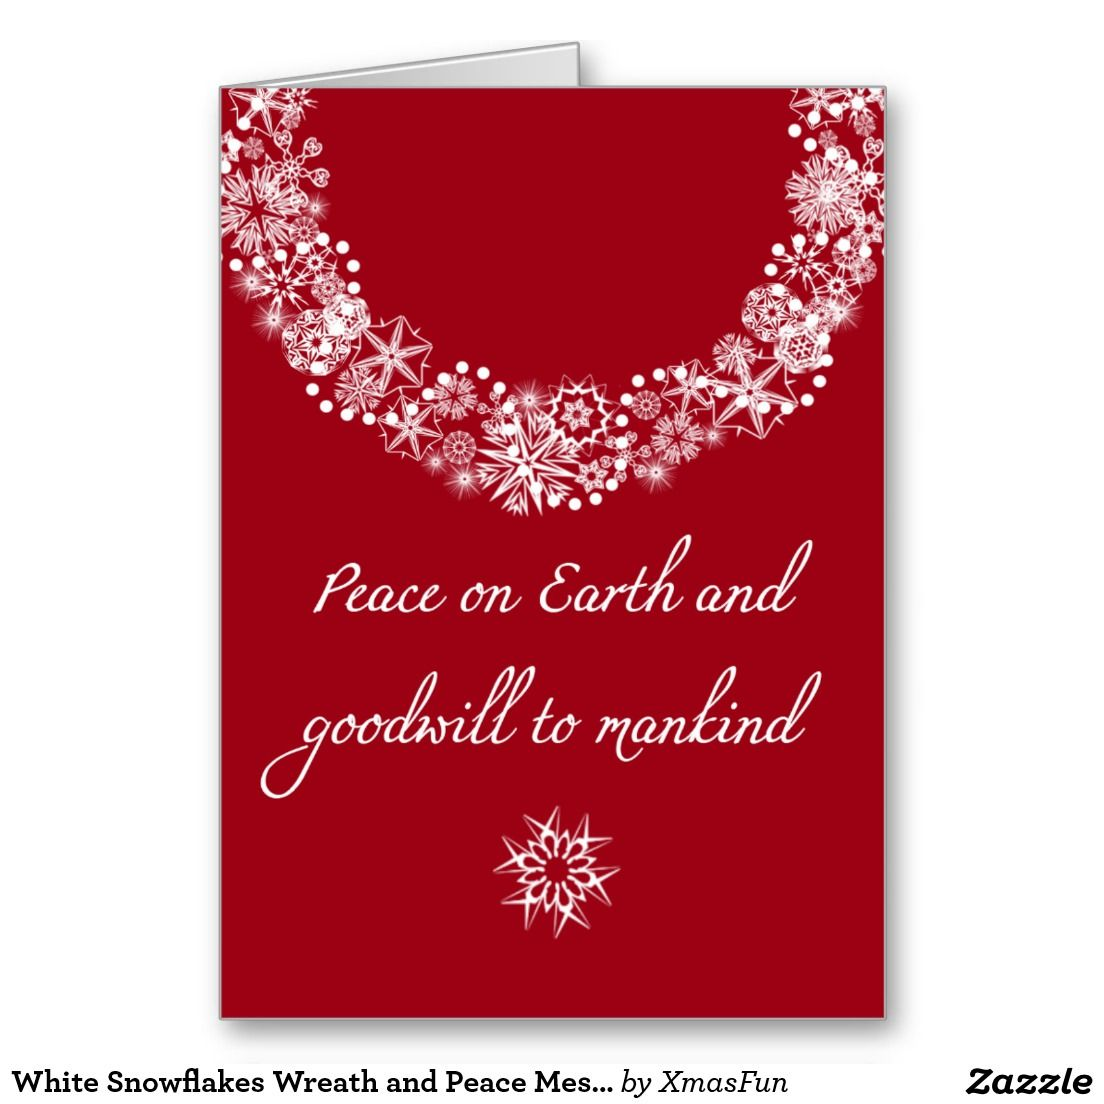 White snowflakes wreath and peace message card snowflake wreath white snowflakes wreath and peace message card m4hsunfo Images